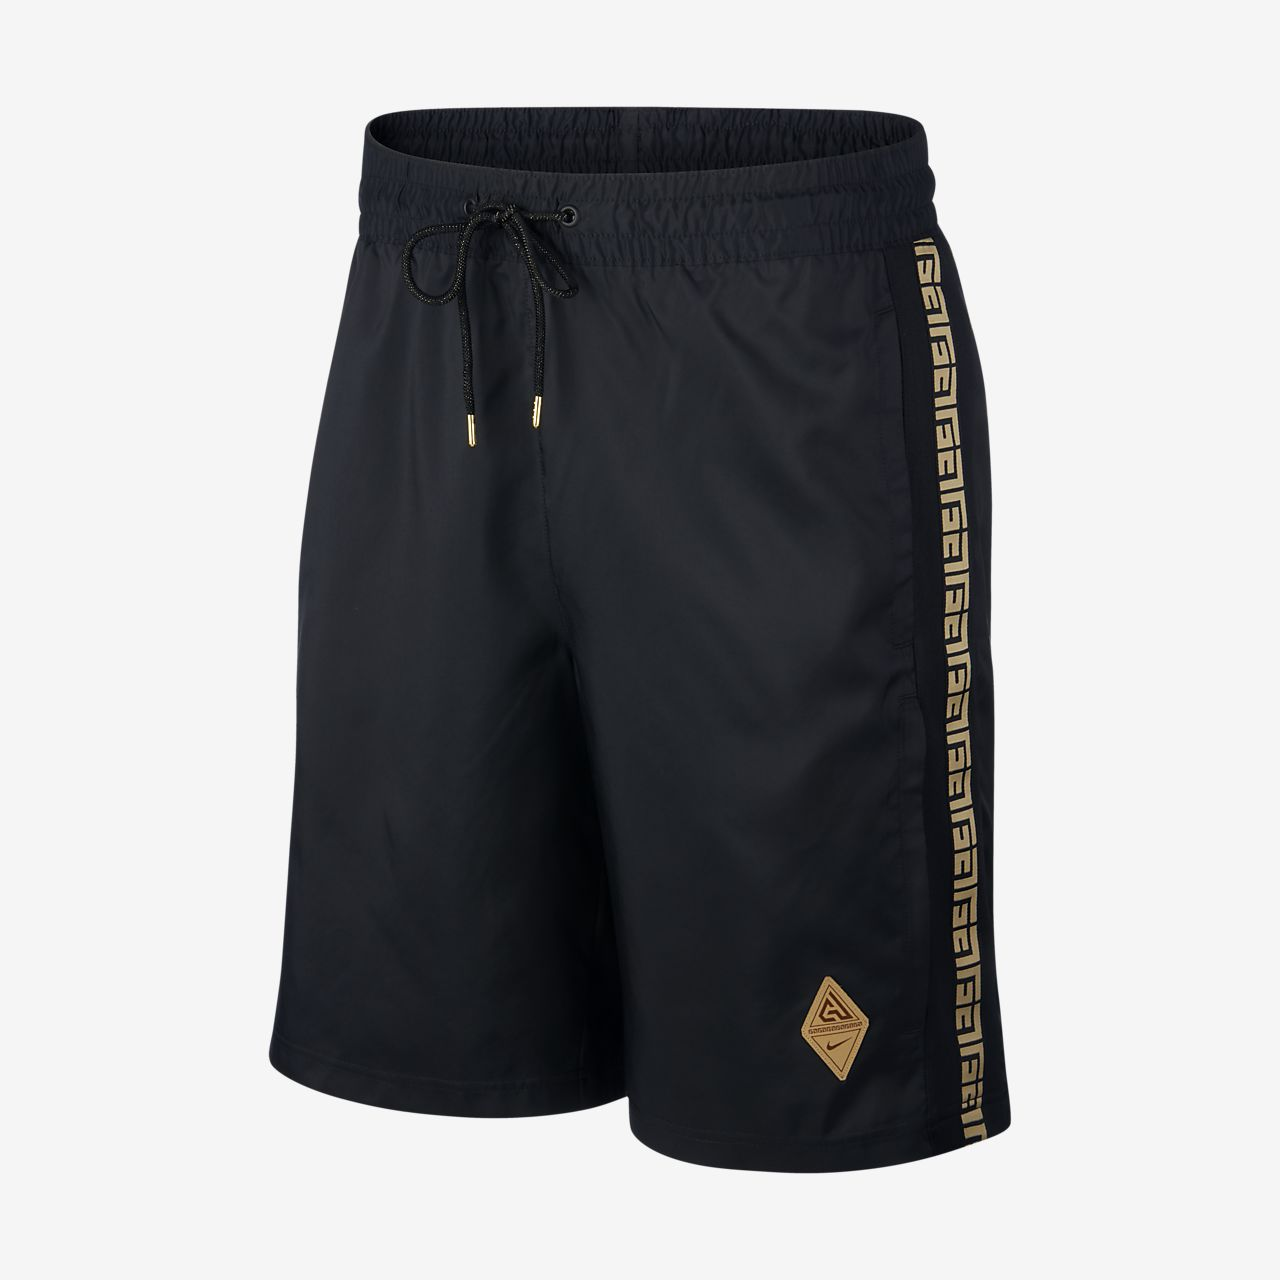 Giannis Men's Basketball Track Shorts